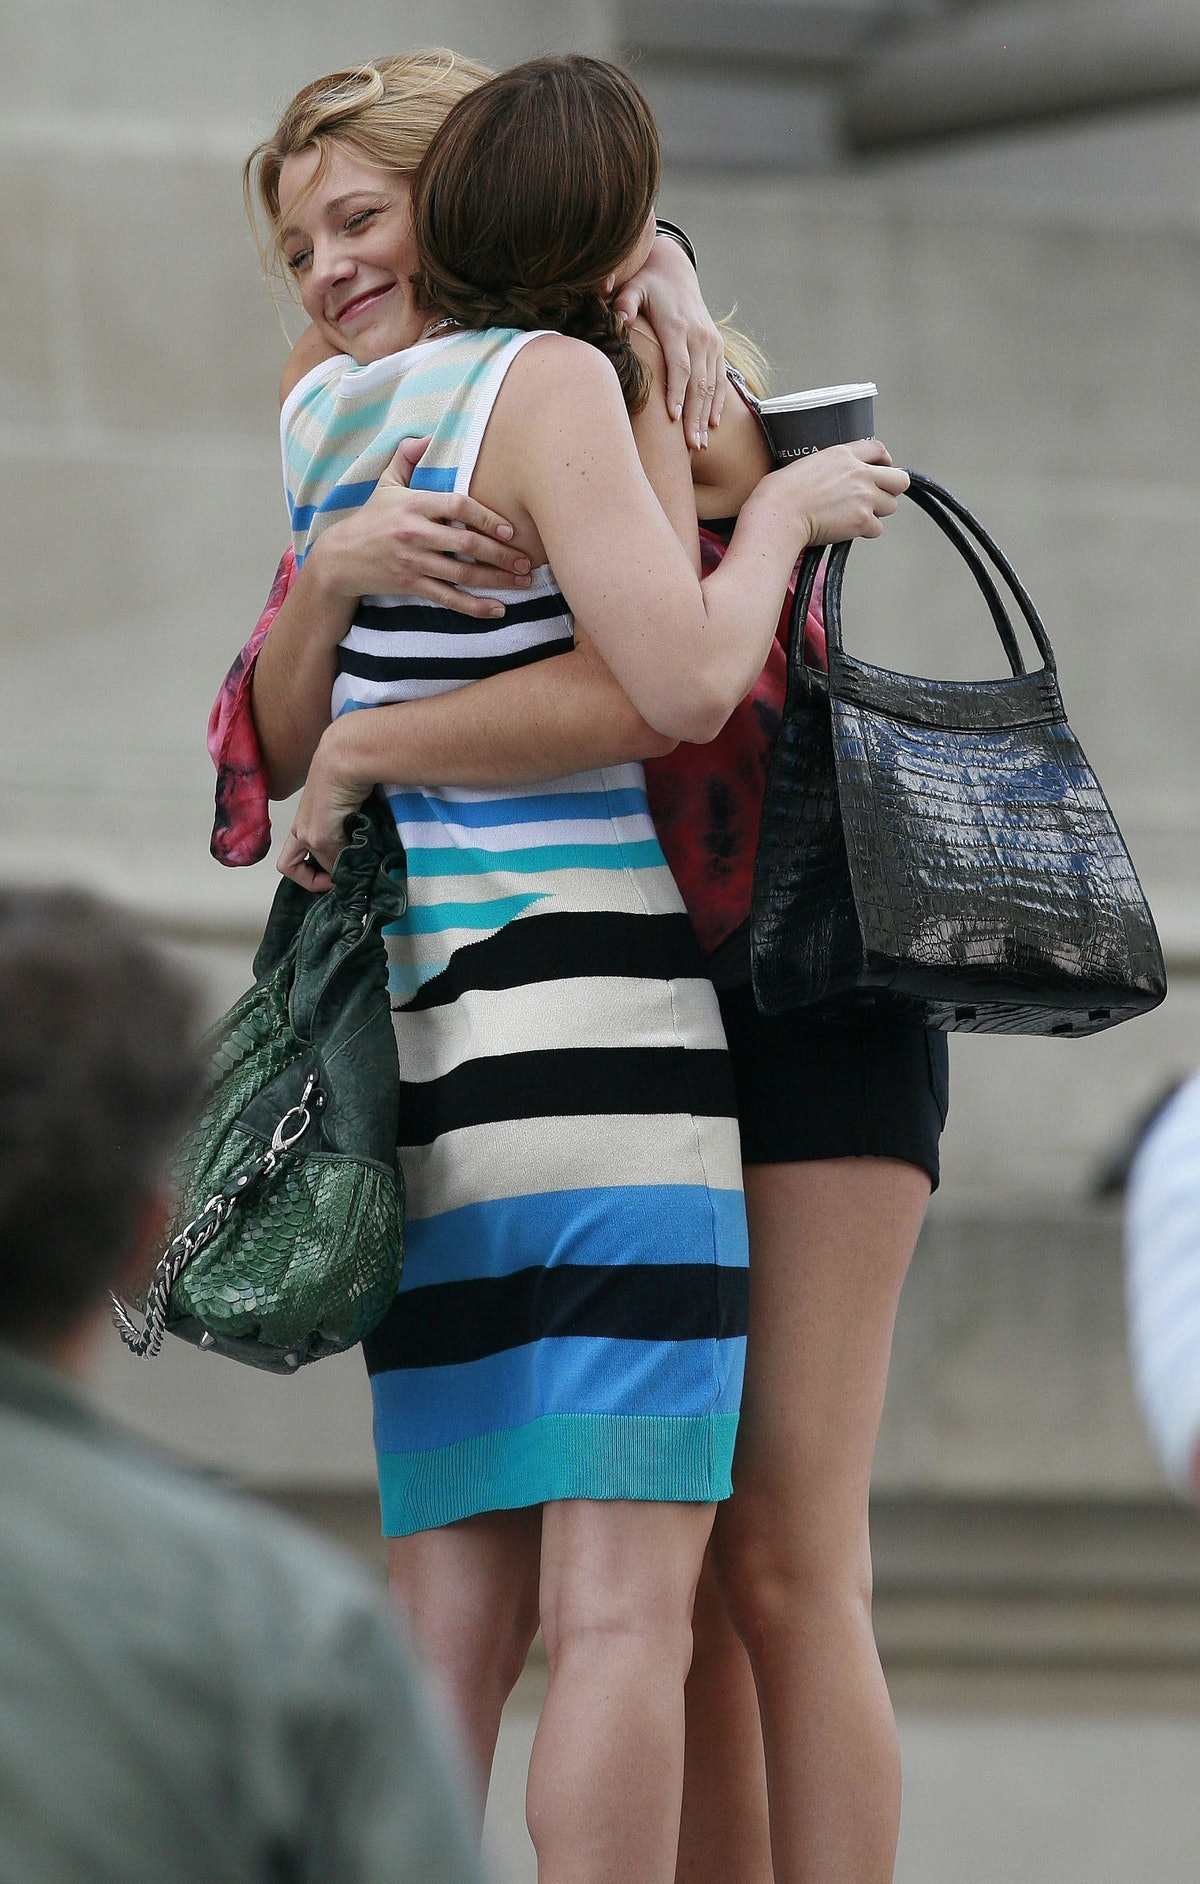 Blake Lively & Leighton Meester as Serena and Blair, hugging on the set of 'Gossip Girl' before the reboot.